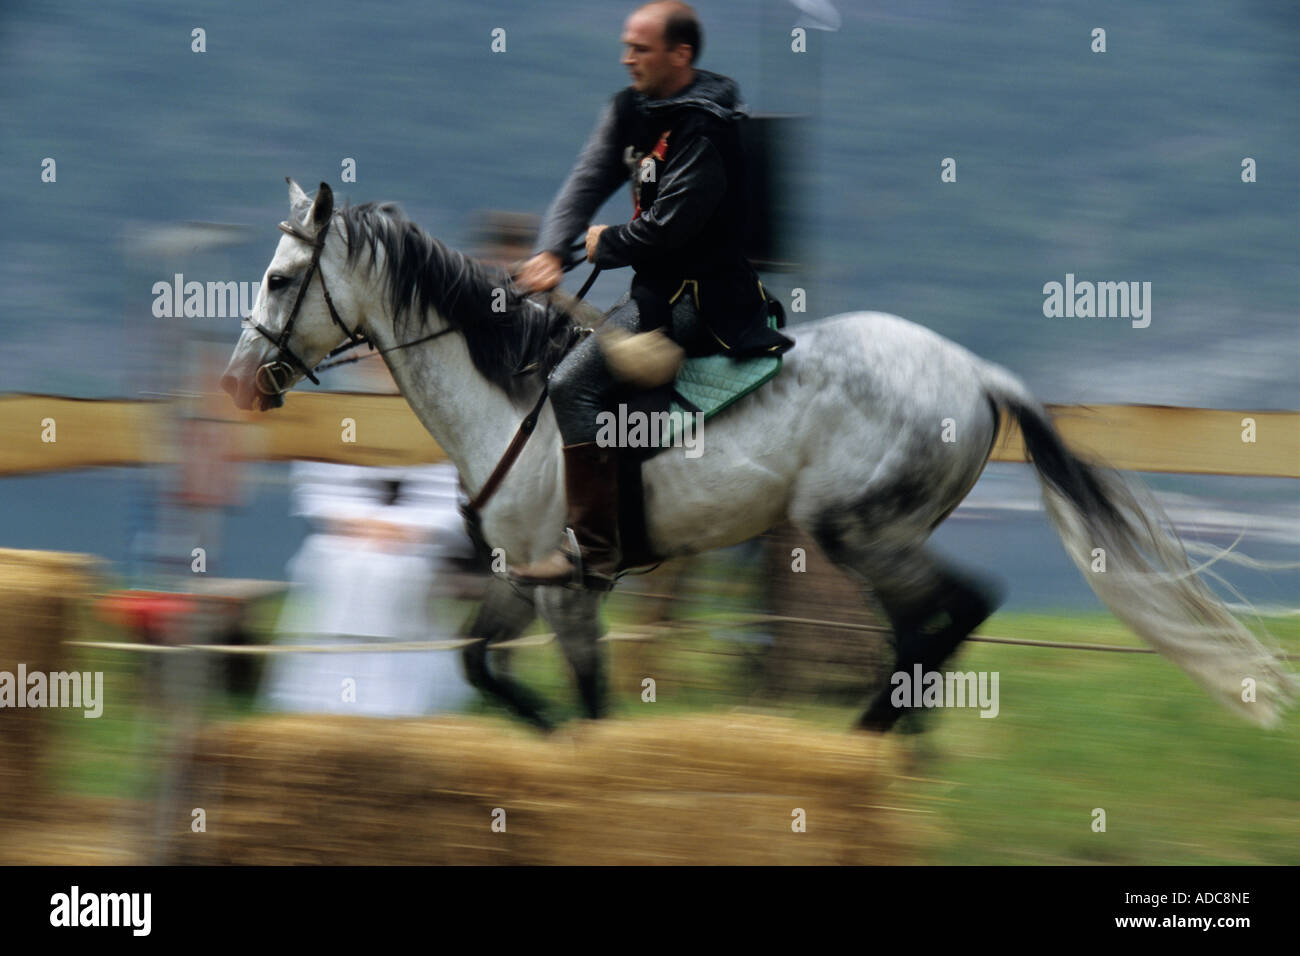 The knights tournament at the traditional historic recall of the Middle Ages, Sale Marasino, Italy - Stock Image